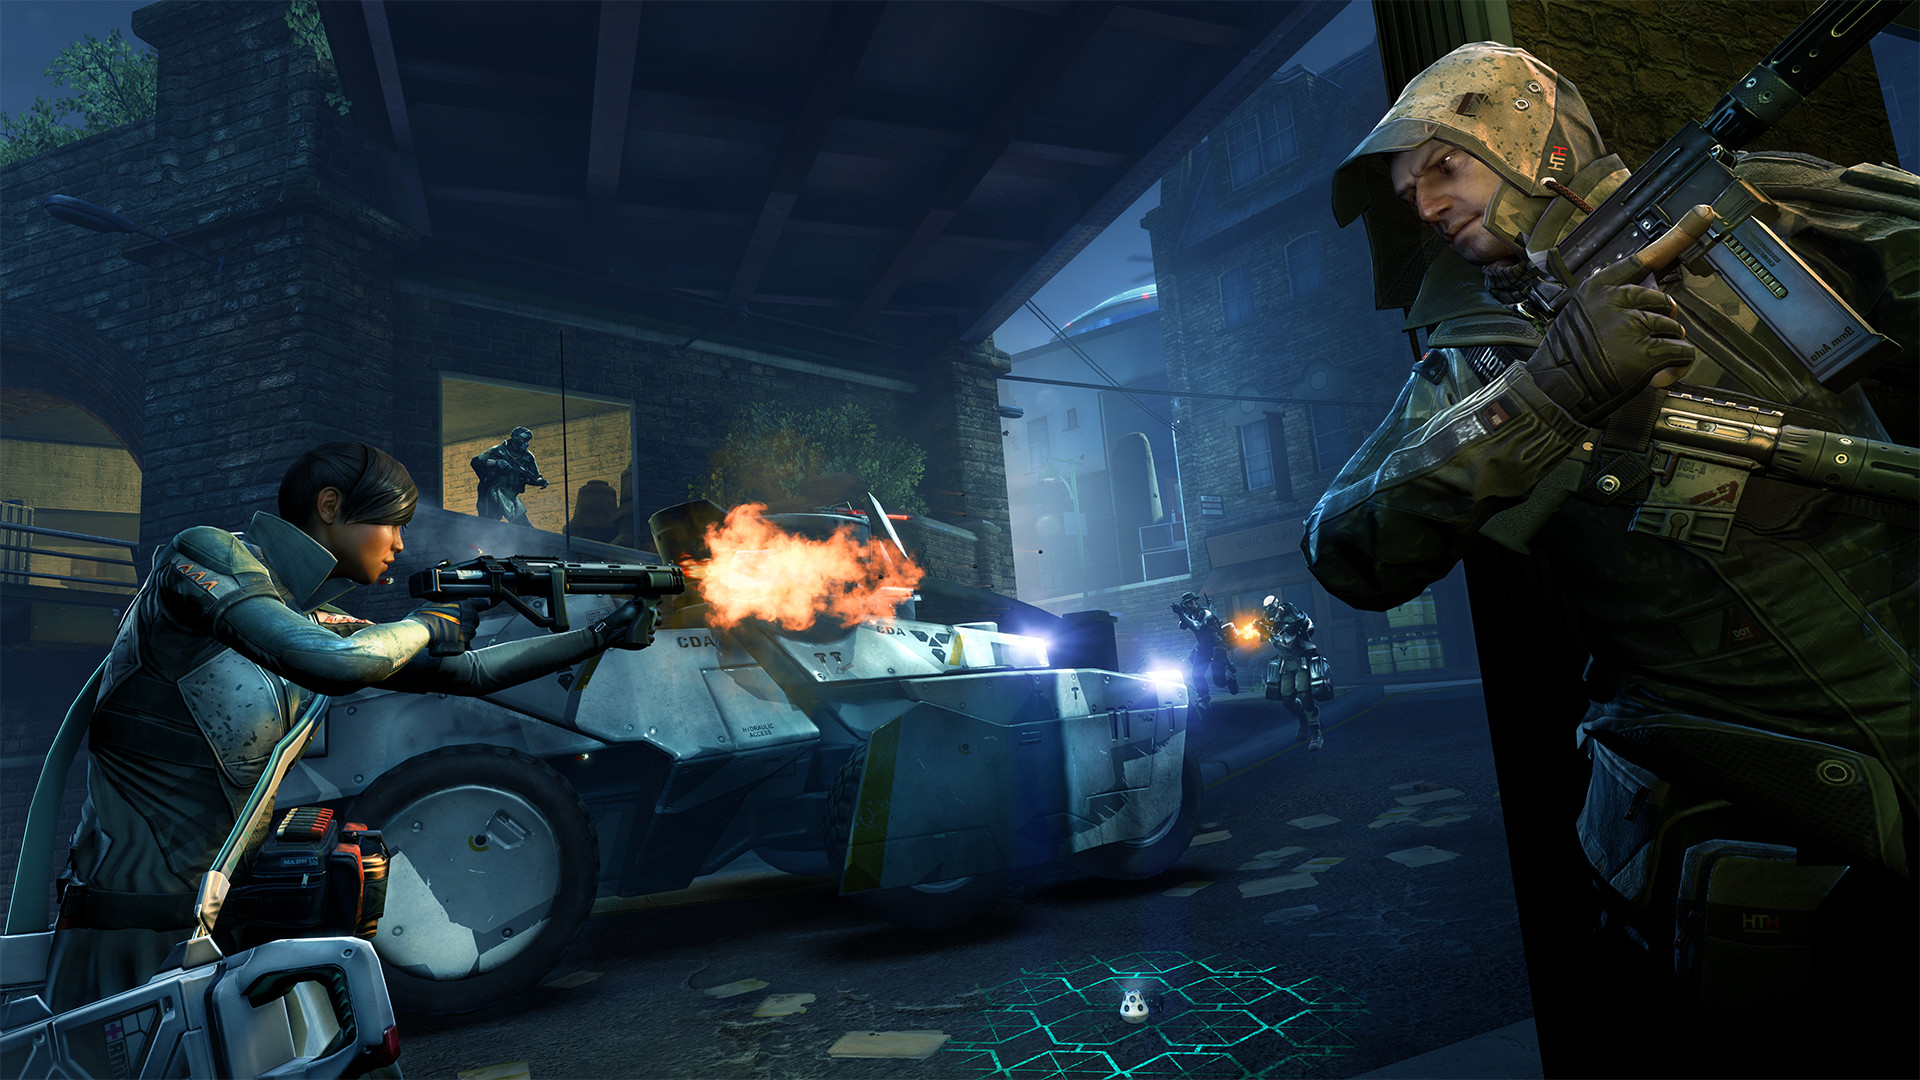 Best Free-to-play Games - Dirty Bomb